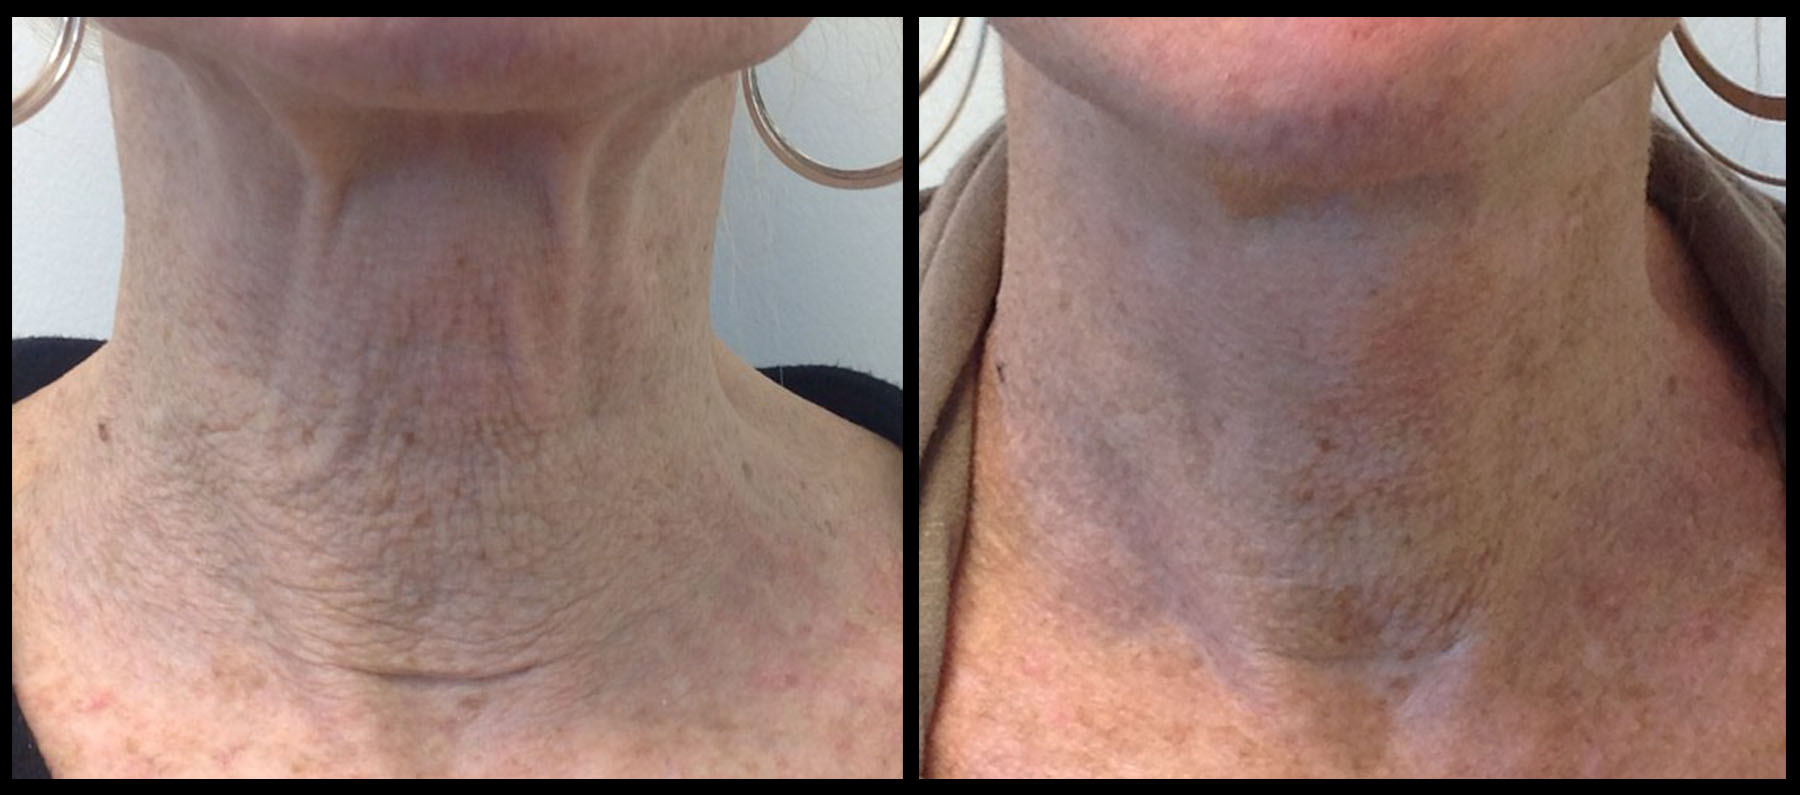 Before & after 1 treatment